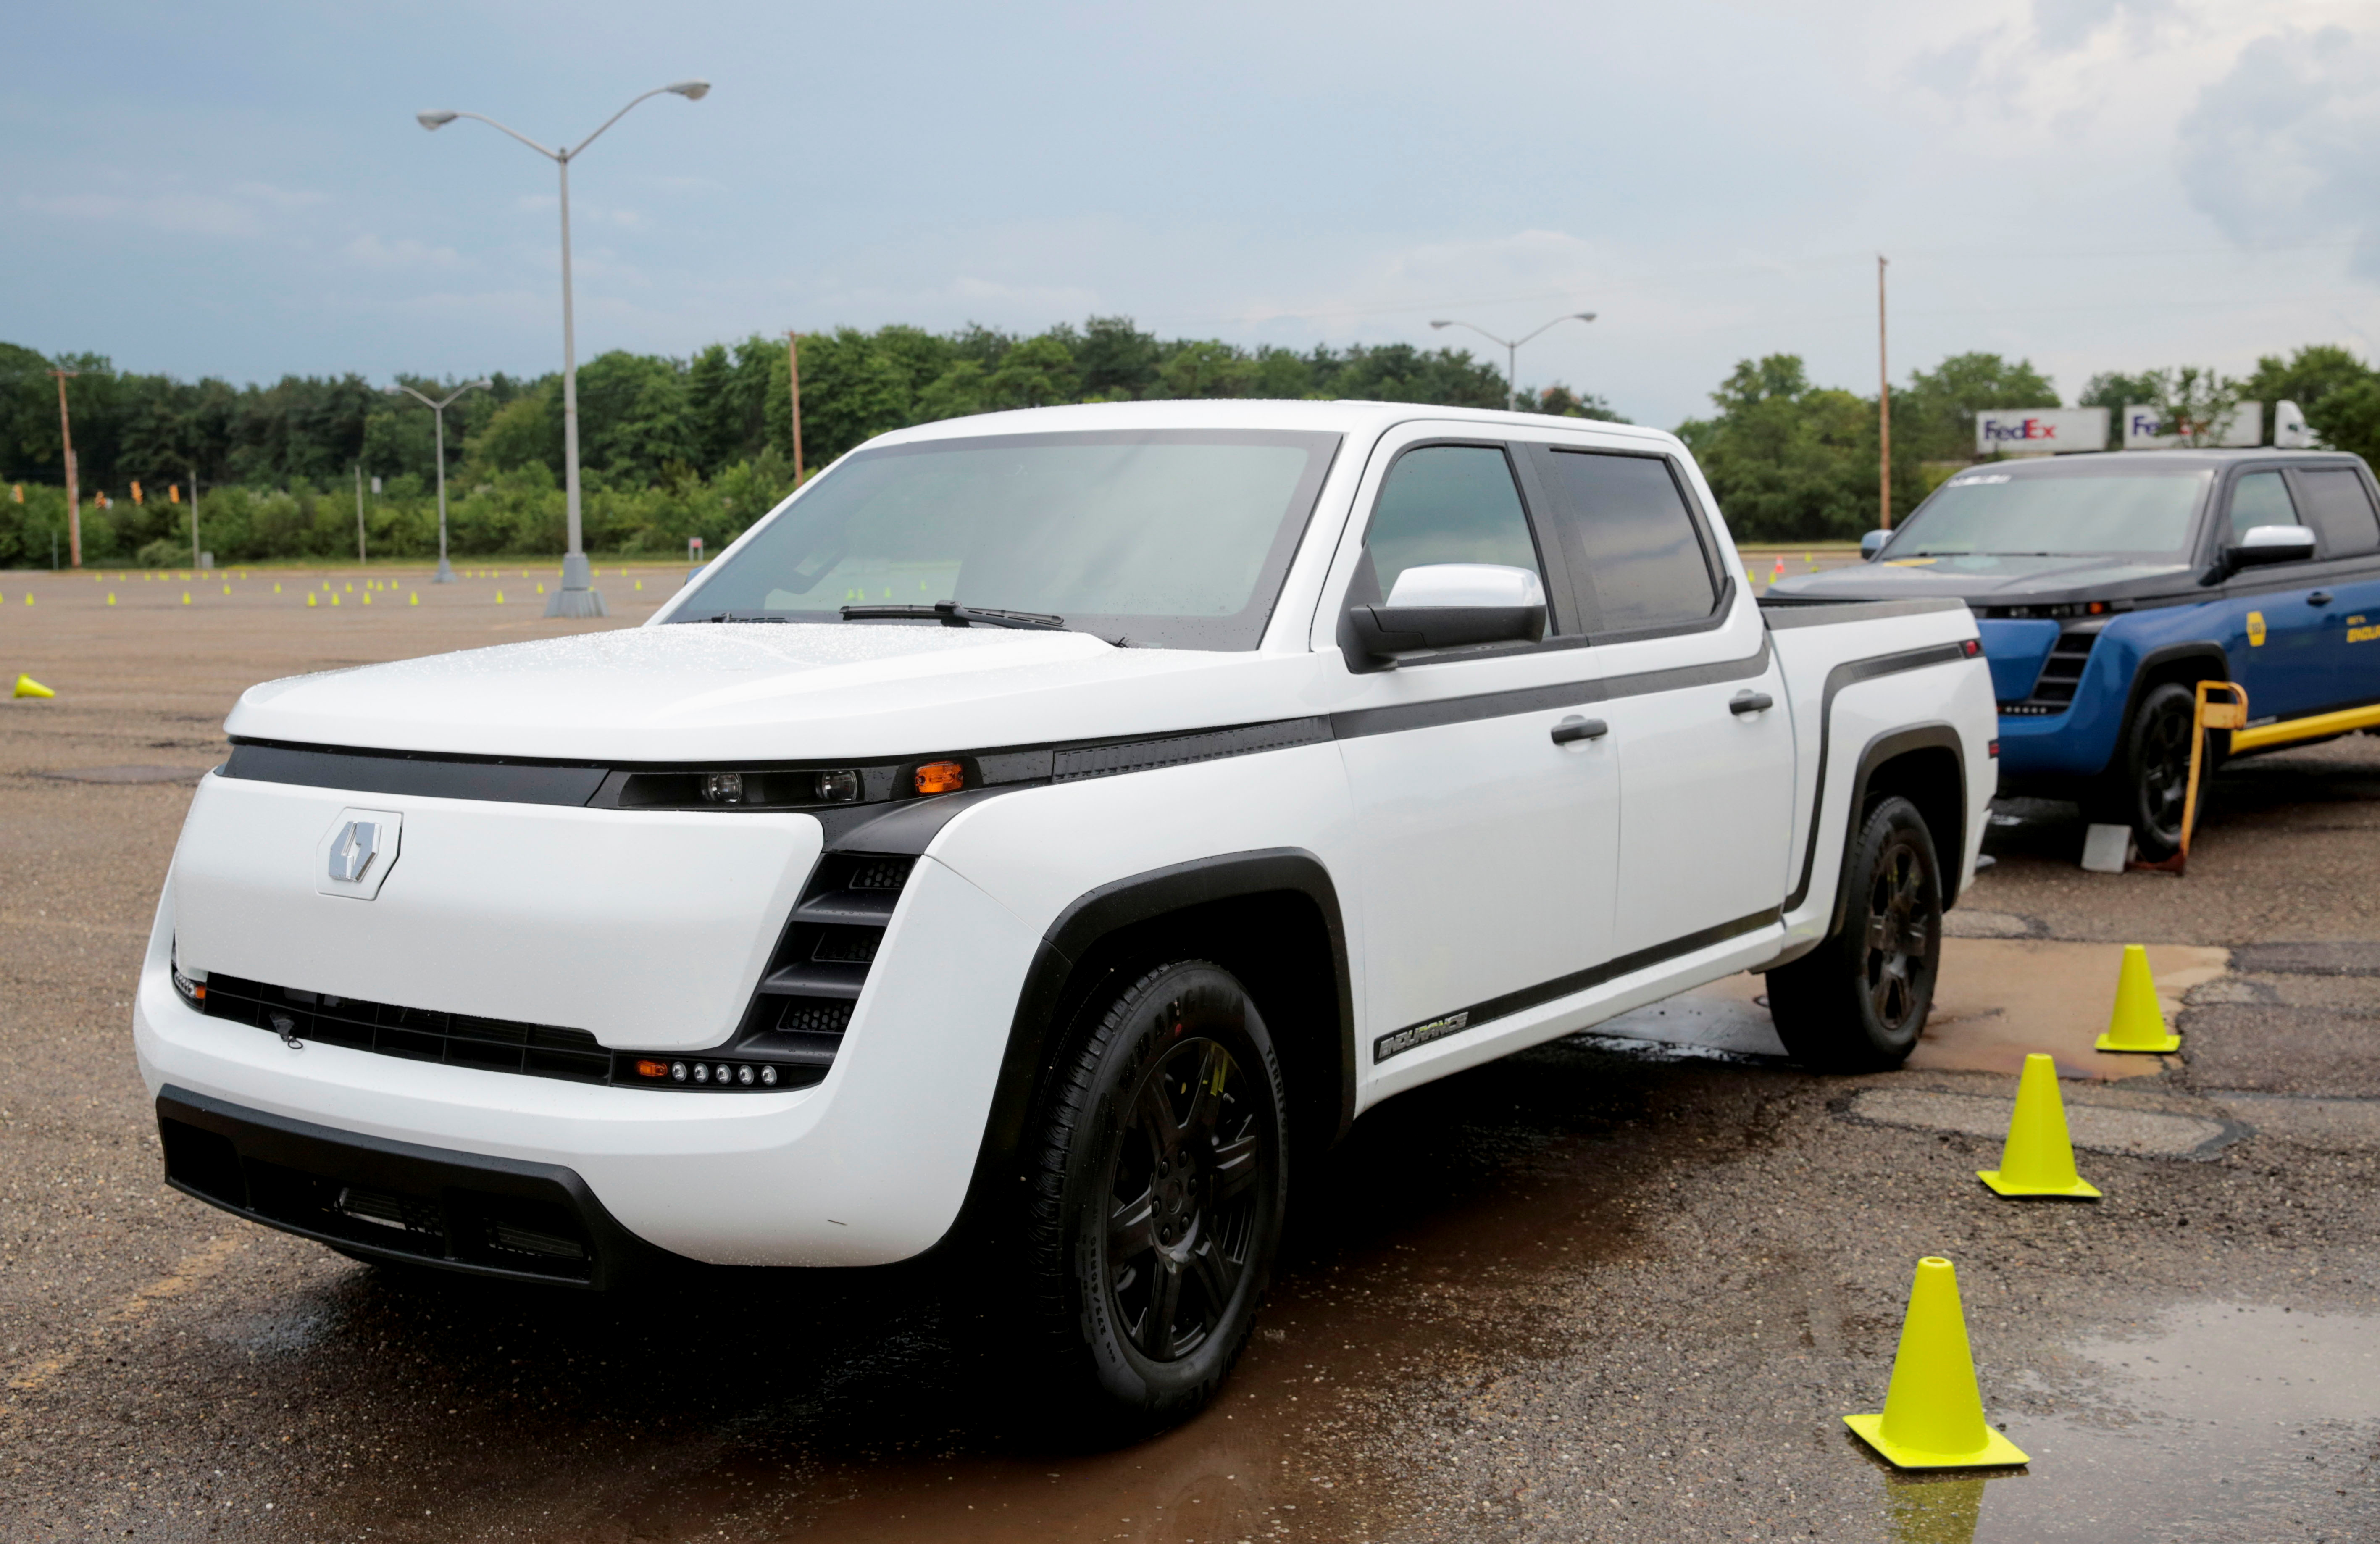 A Lordstown Motors beta version of its all electric pickup truck, the Endurance, is seen at the Lordstown Assembly Plant in Lordstown, Ohio, U.S., June 21, 2021. REUTERS/Rebecca Cook